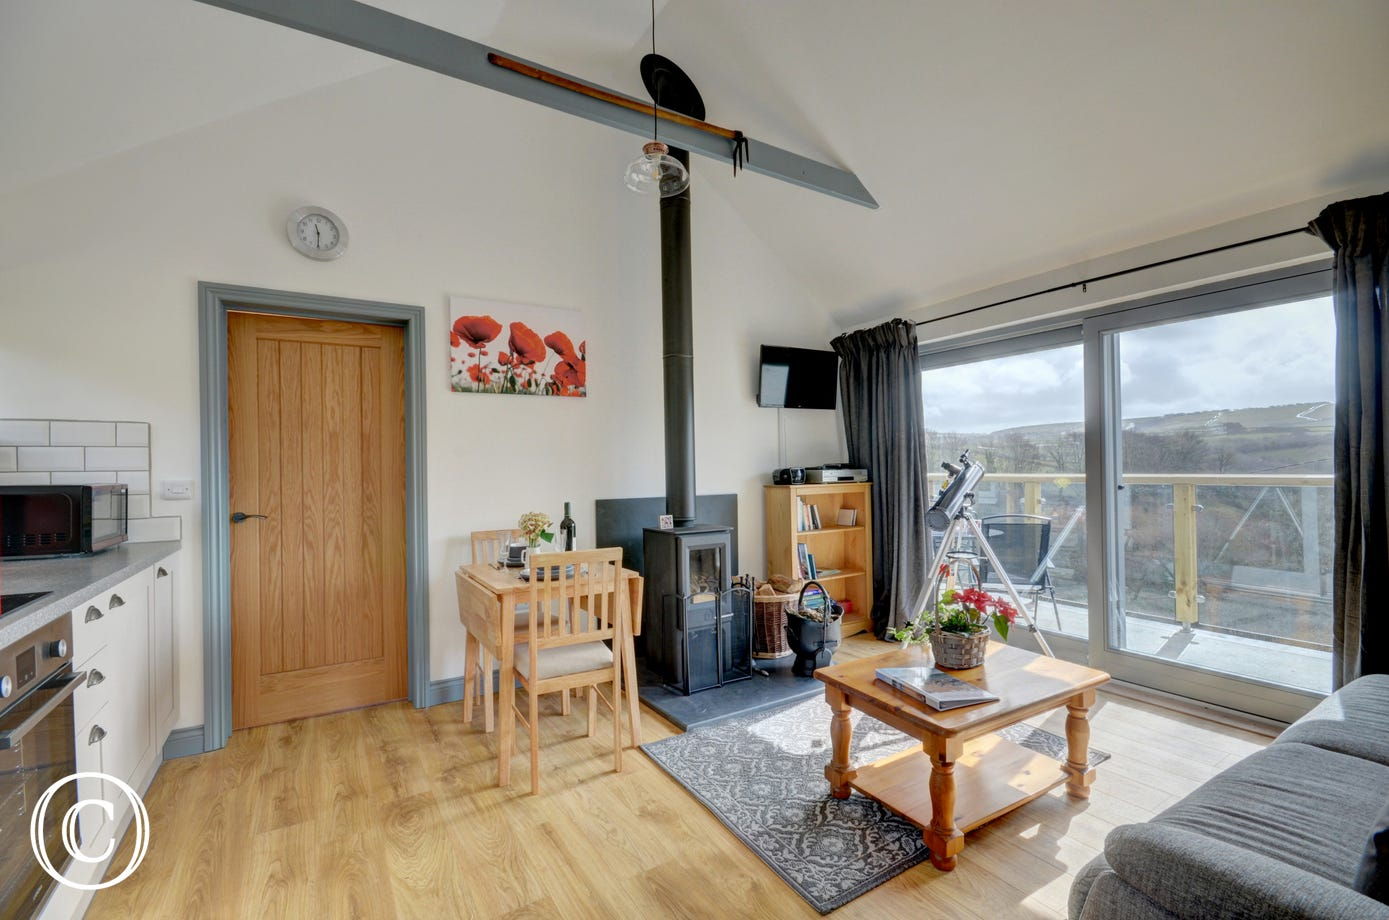 The open plan living space has a vaulted ceiling, woodburning stove and a dining area